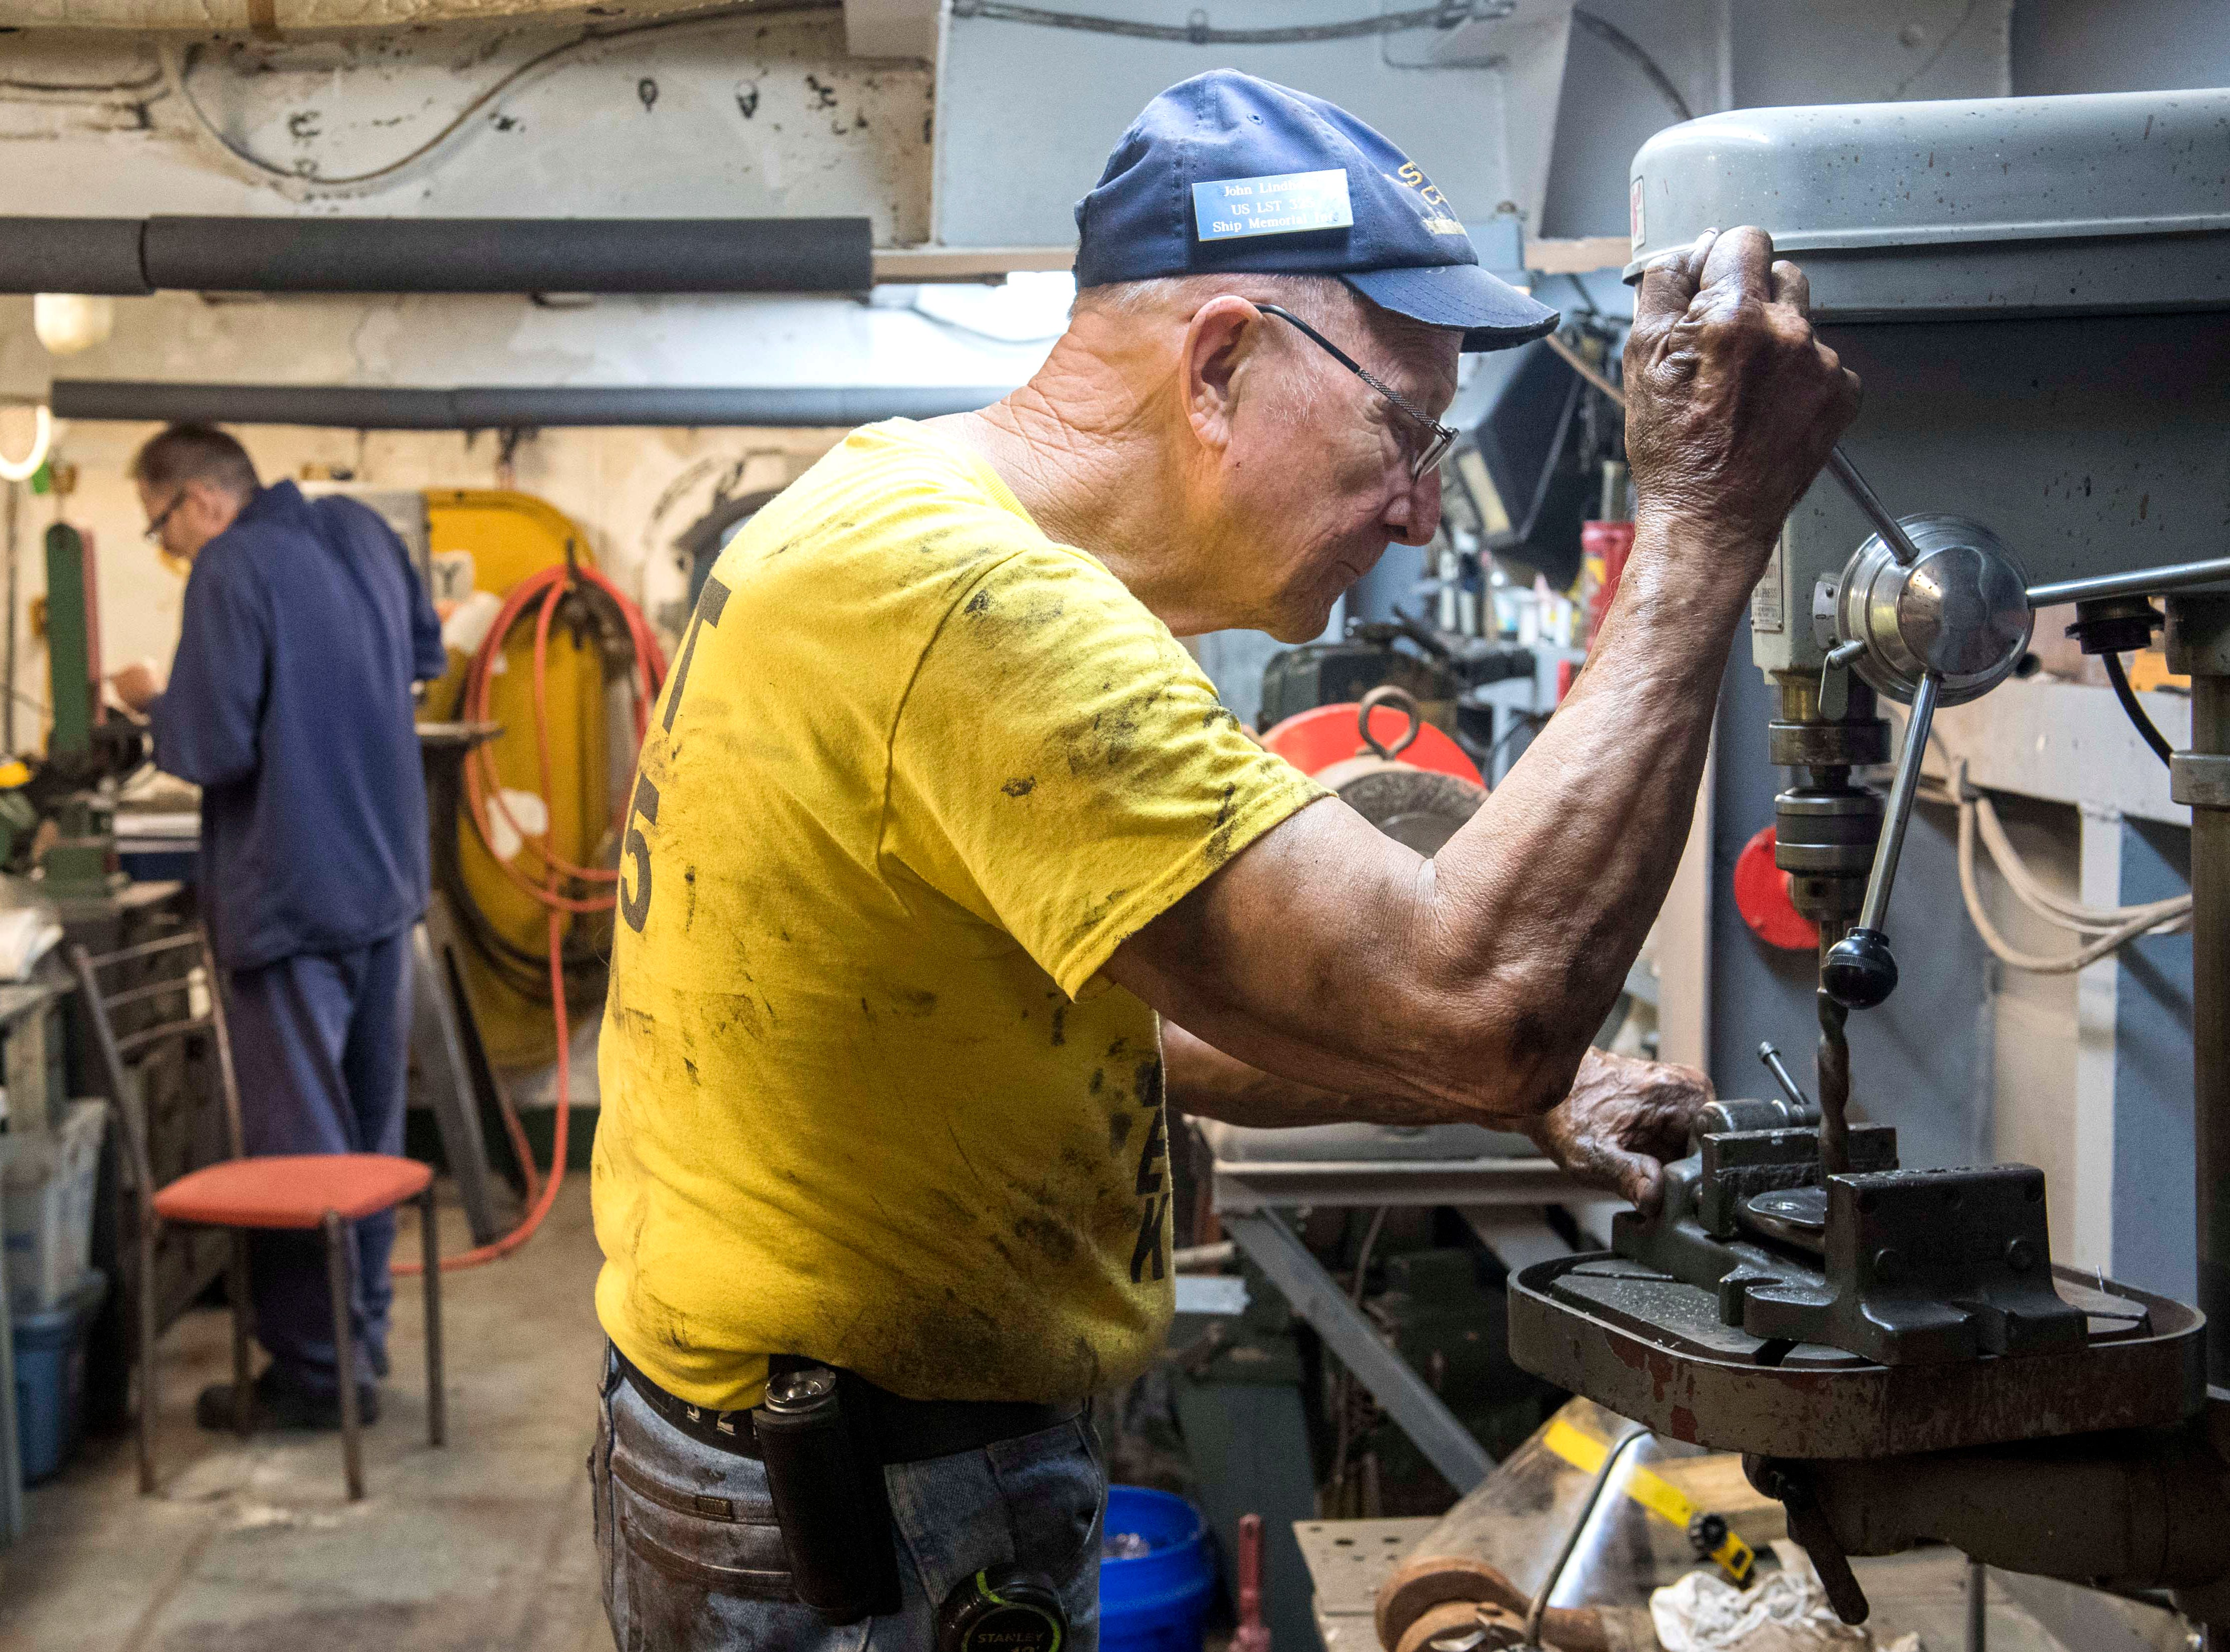 """USS LST Memorial volunteer John Lindholm, a 76-year-old Navy Veteran from Olney, Ill., manufactures a block-off plate for a valve in the machine shop of the LST 325 during """"Work Week"""" Tuesday, April 30, 2019. Volunteers from across the nation will spend the week completing multiple tasks to ready the 76-year-old ship for the summer tourist and cruising season."""